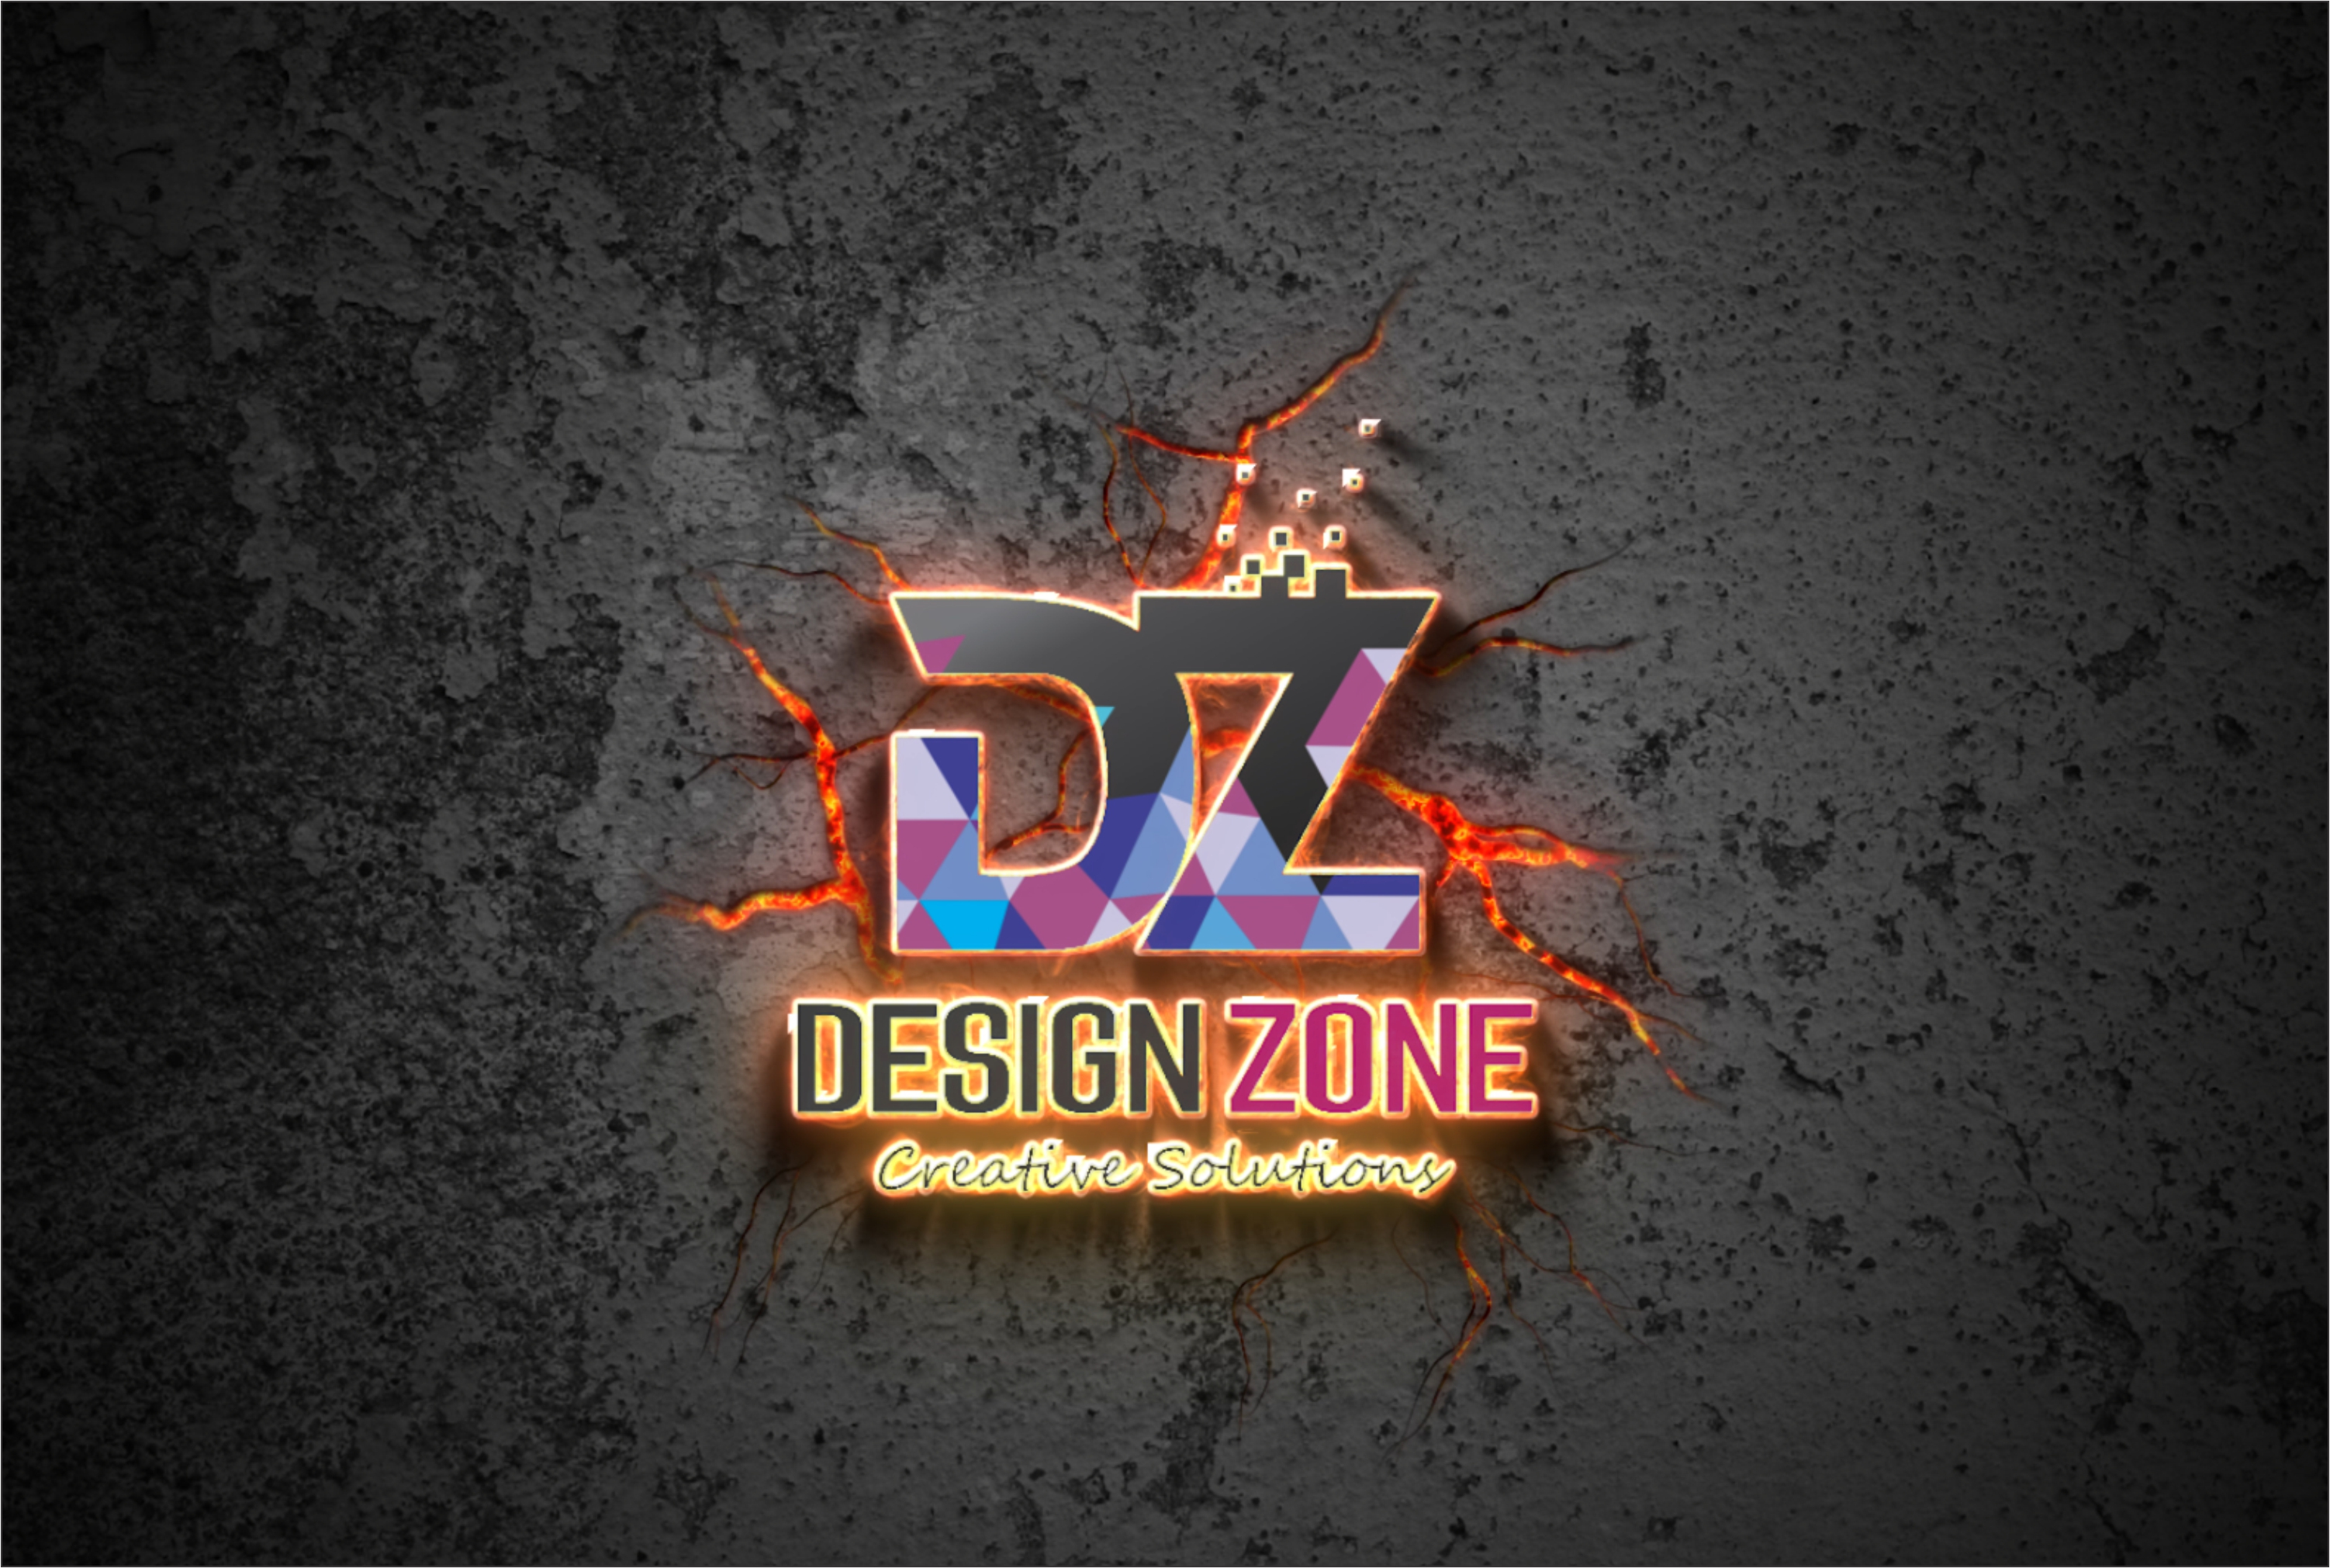 I will create professional full HD 3d logo intro videos within 24 hours